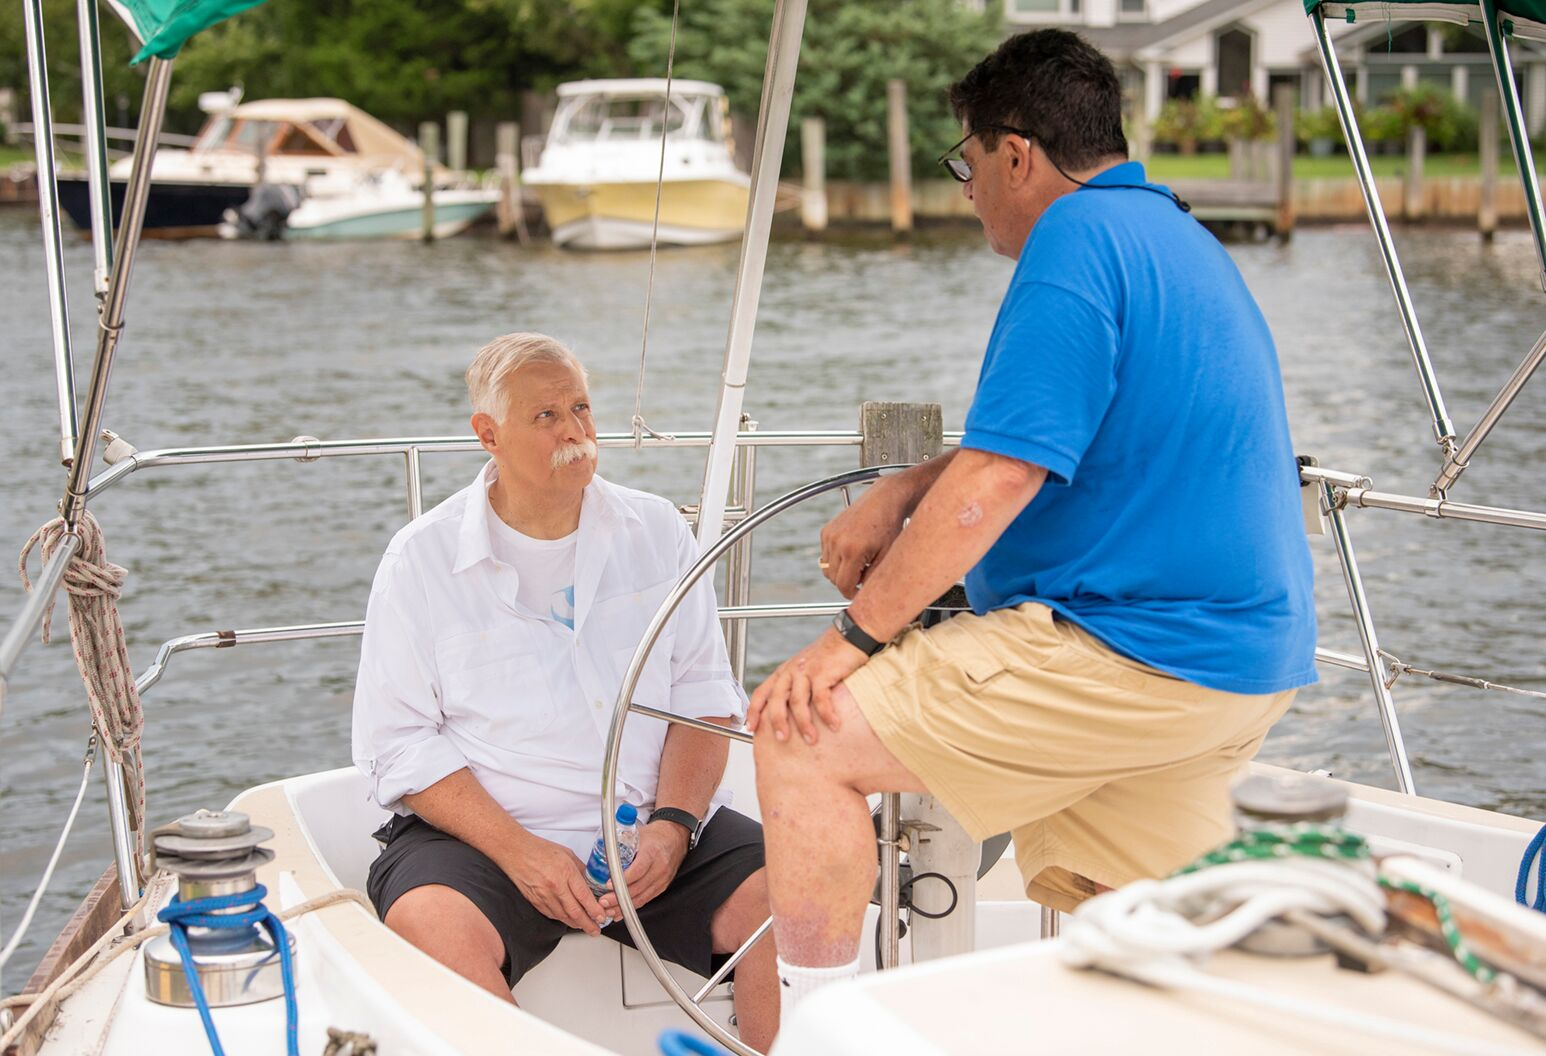 Two men enjoy an afternoon out on the water in a boat.